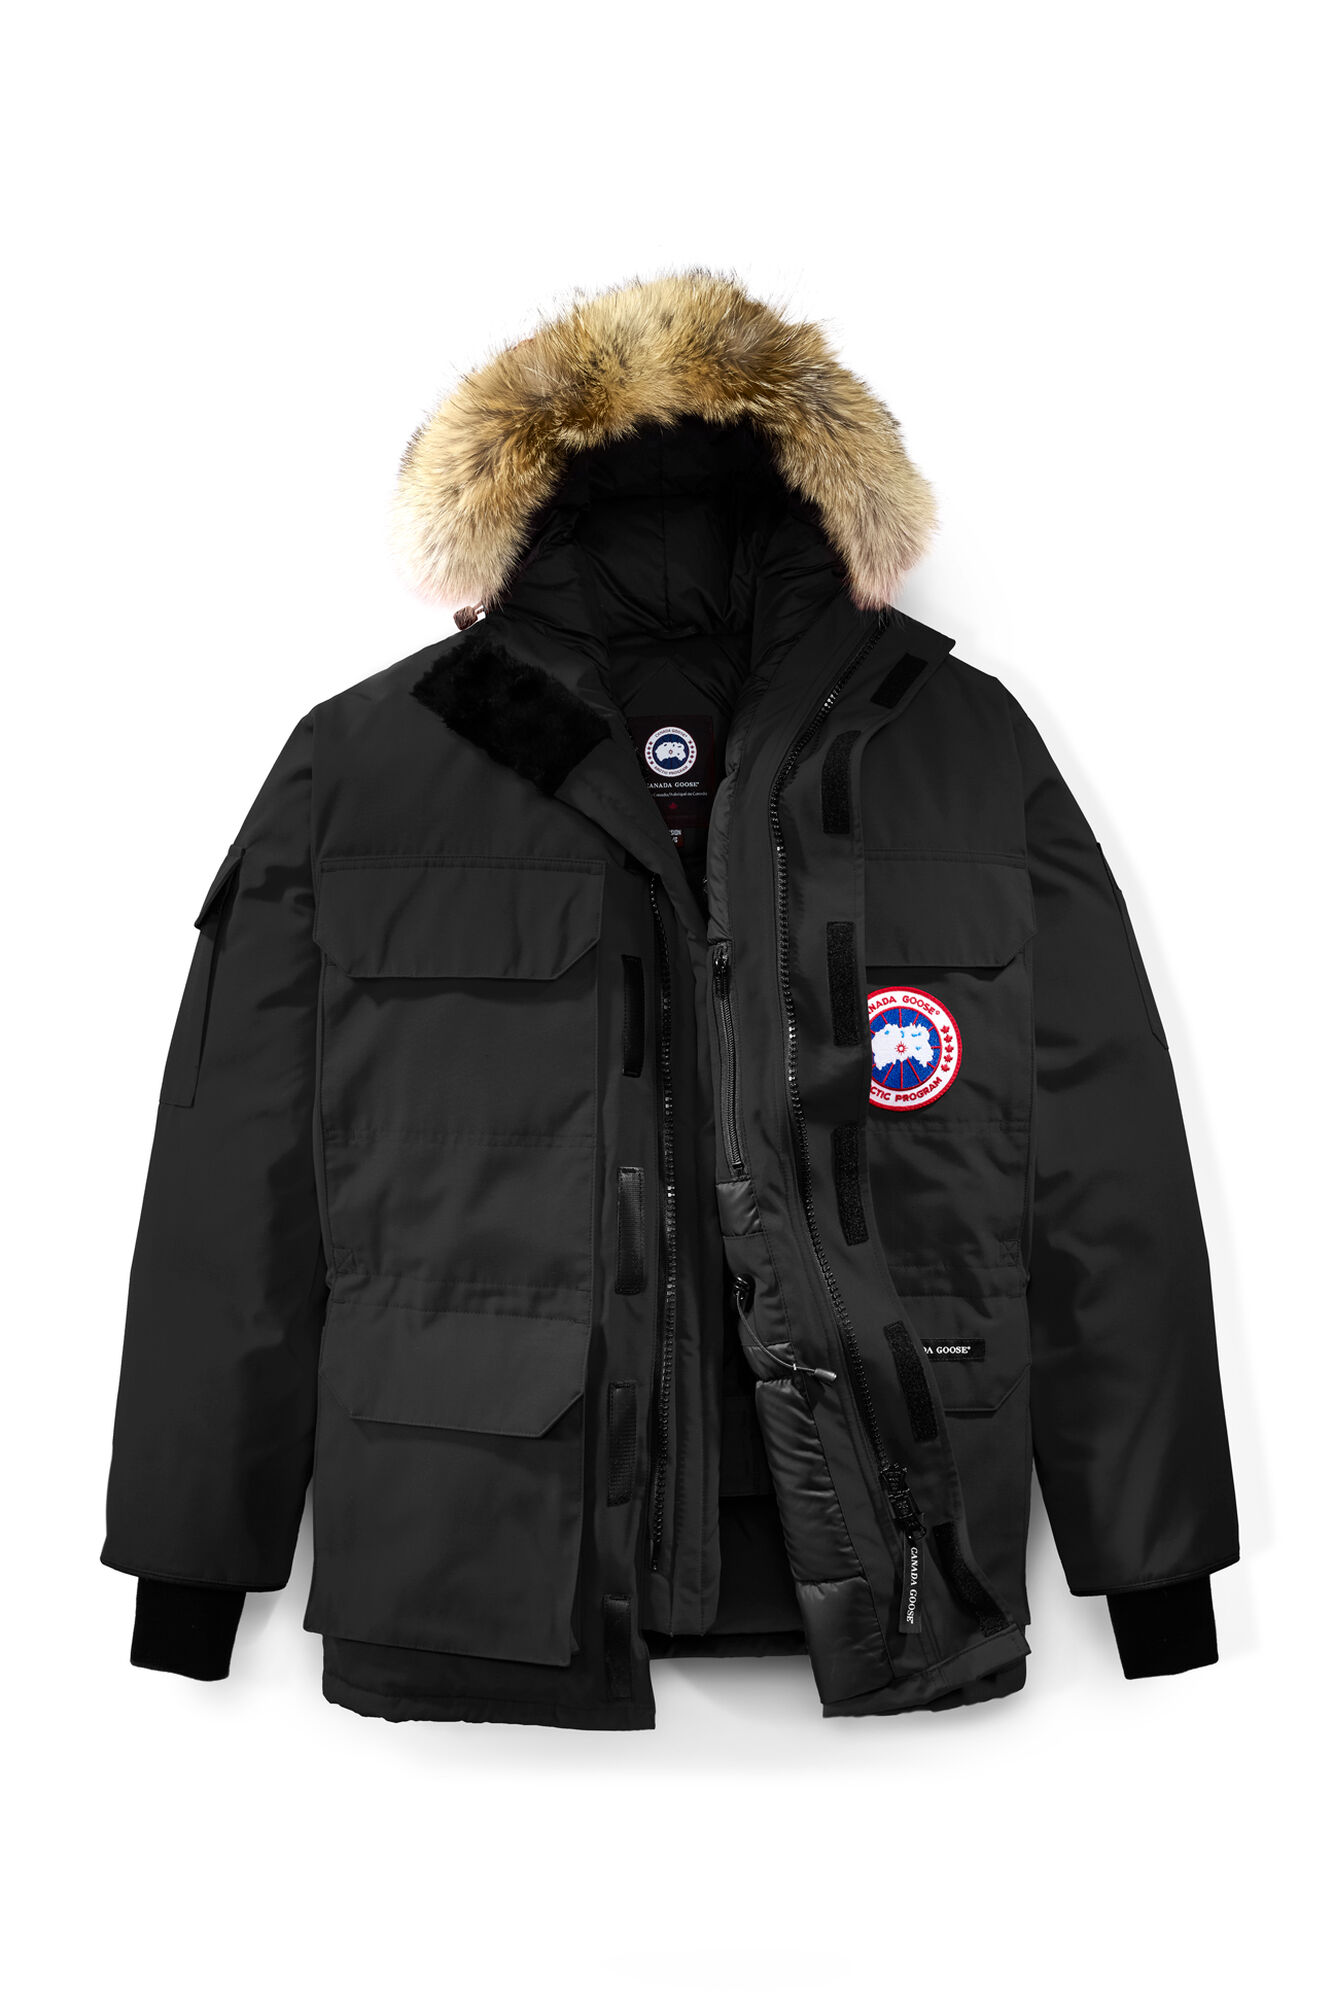 Canada Goose victoria parka outlet 2016 - Men's Arctic Program Expedition Parka | Canada Goose?